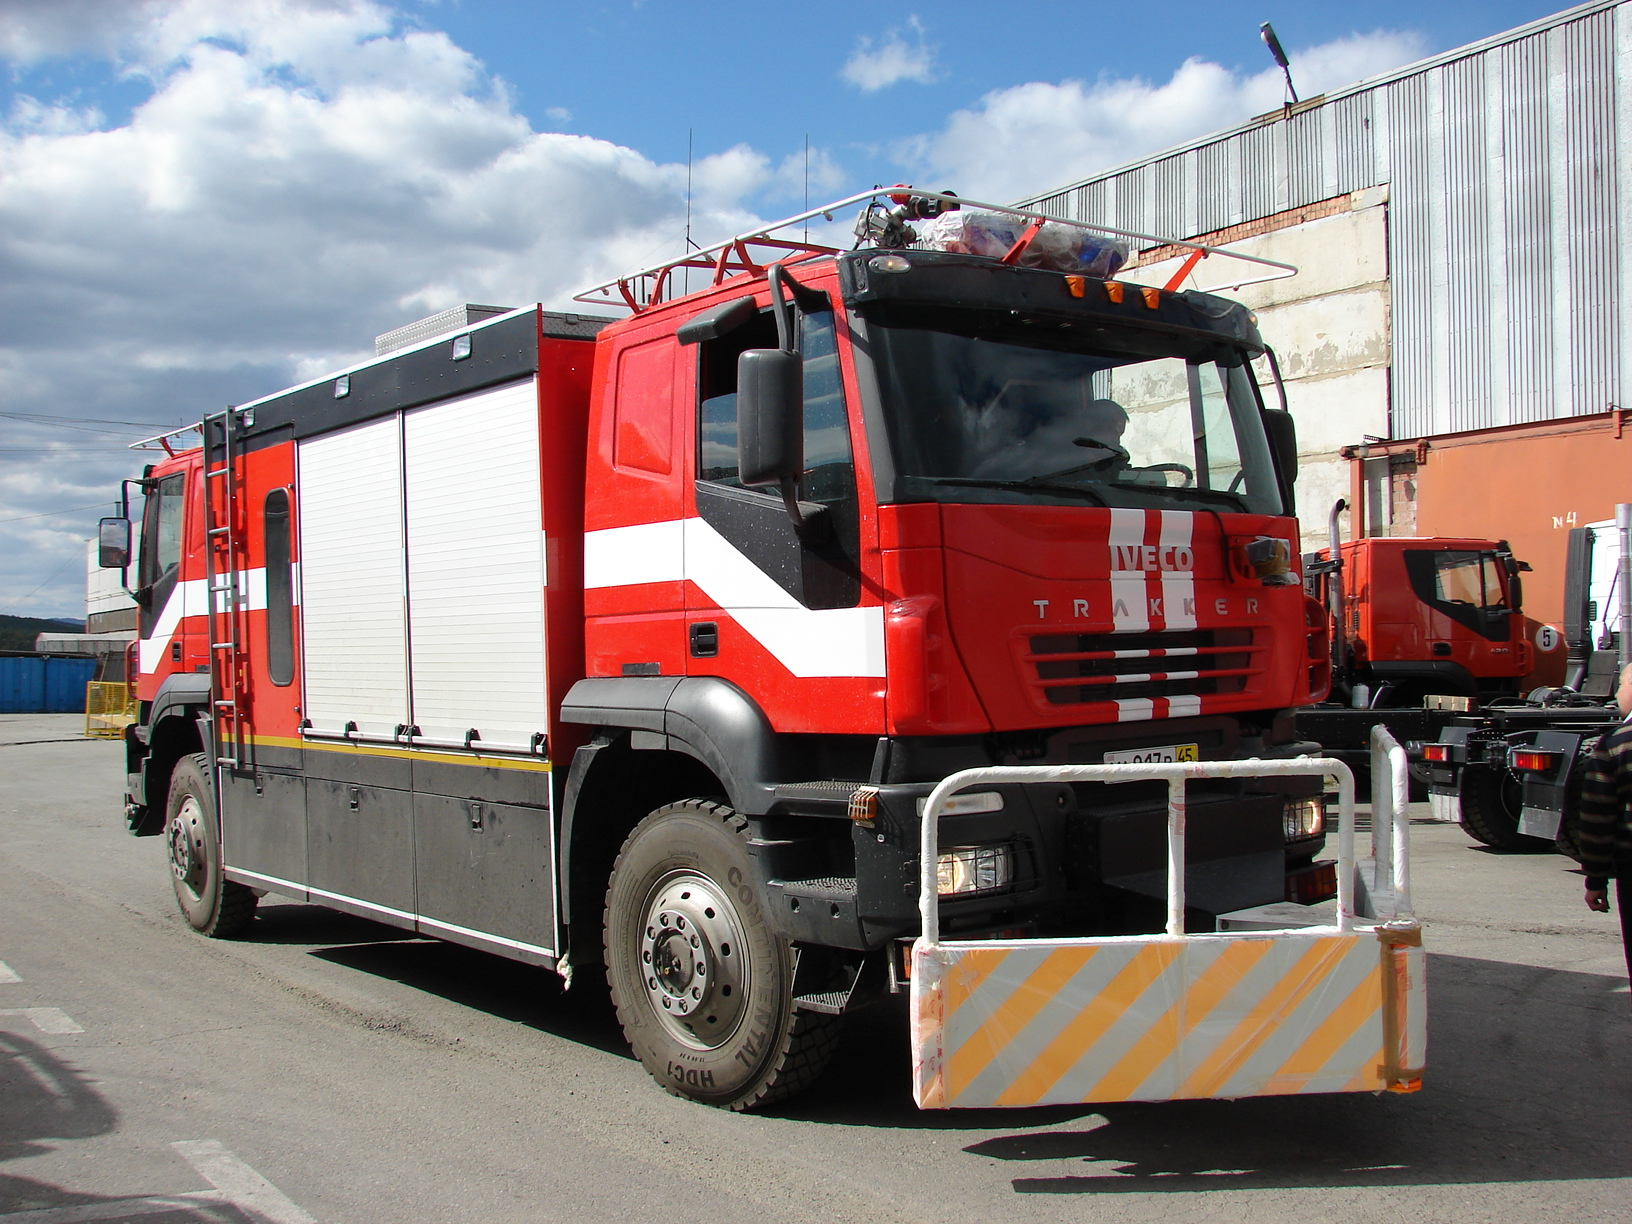 IVECO-AMT_Trakker-Firefighters